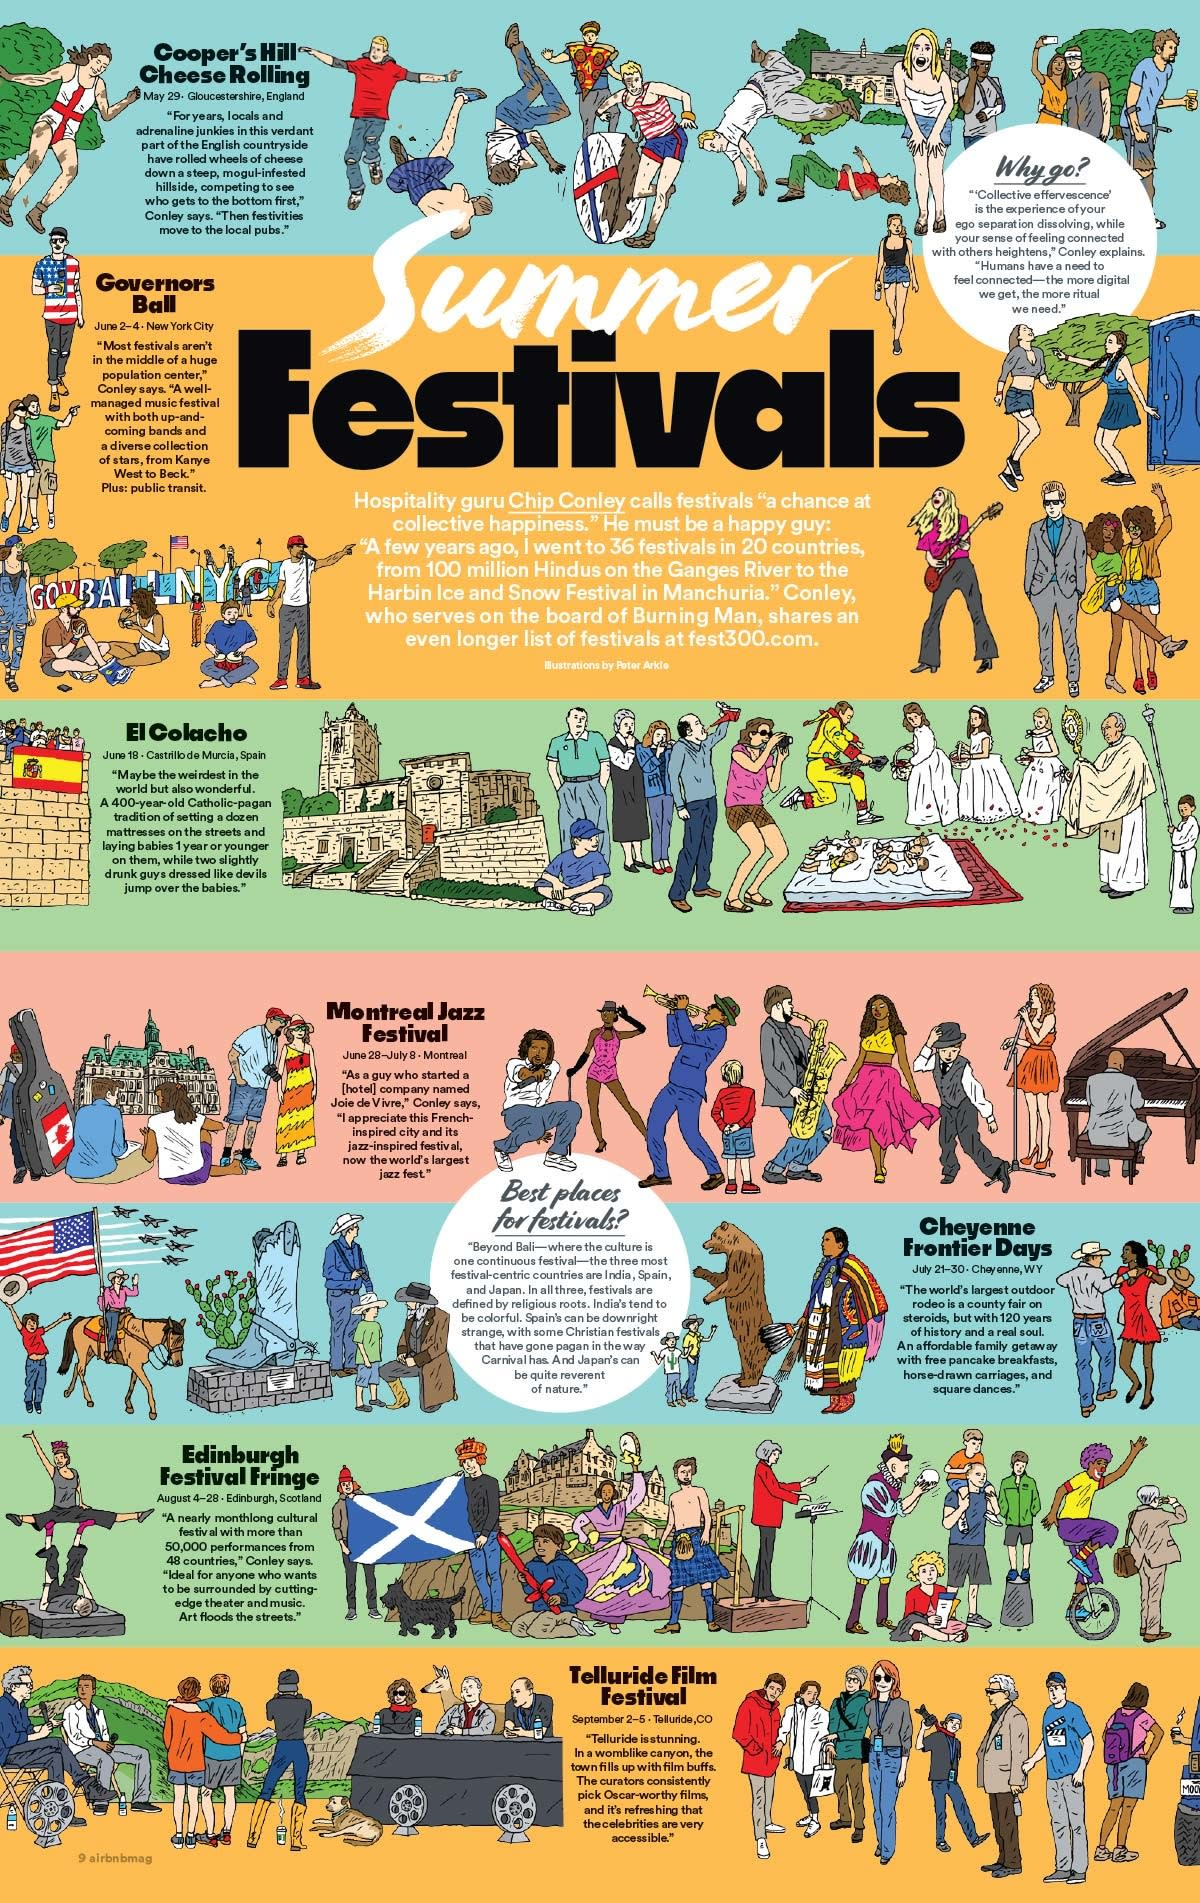 Airbnb Festival Poster